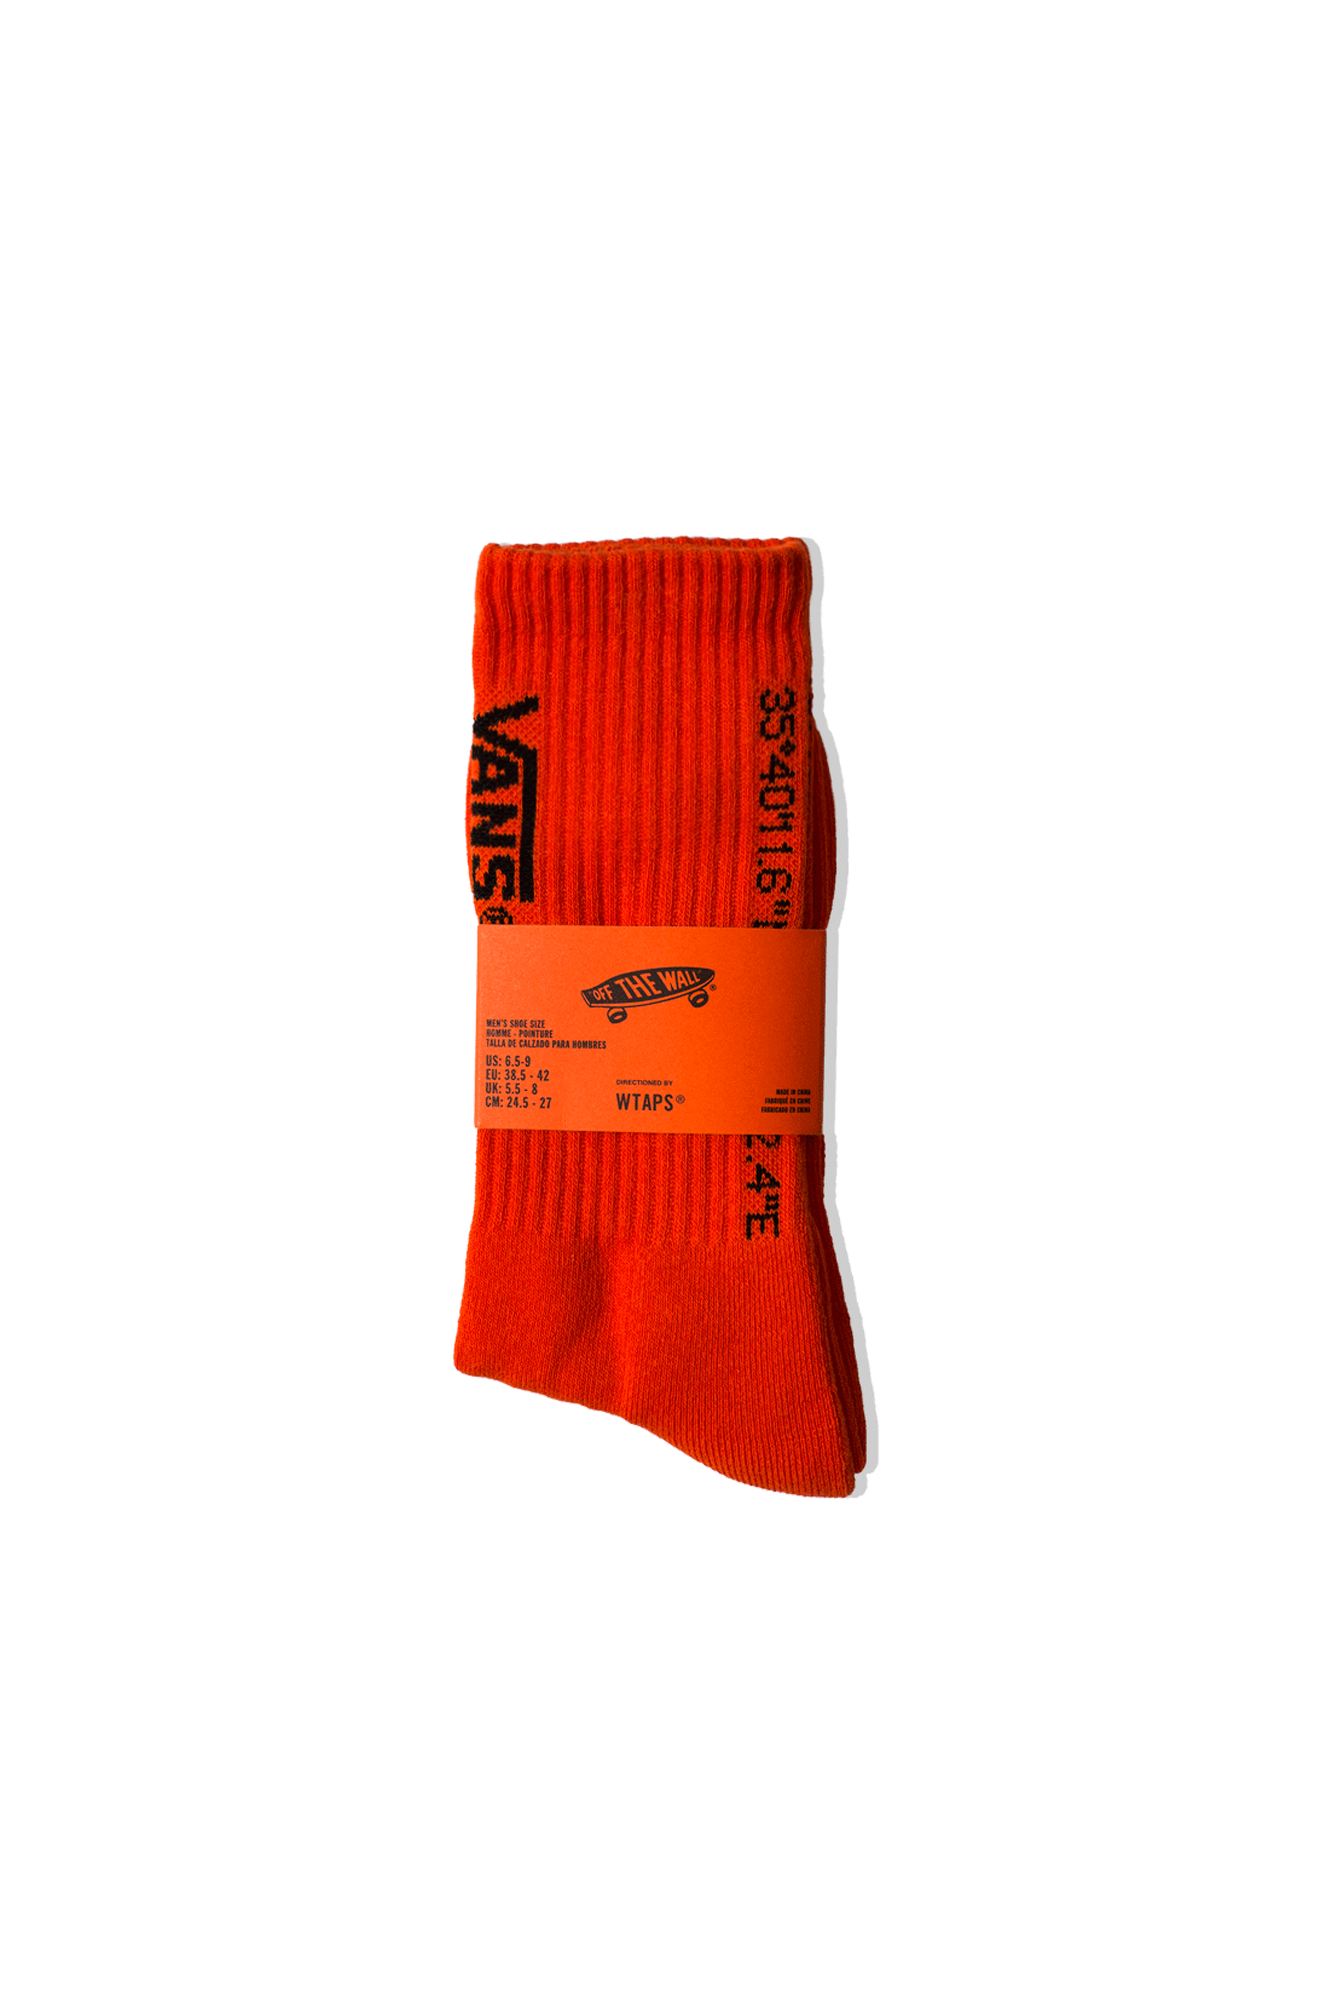 Coordinates Crew Socks x WTAPS Orange